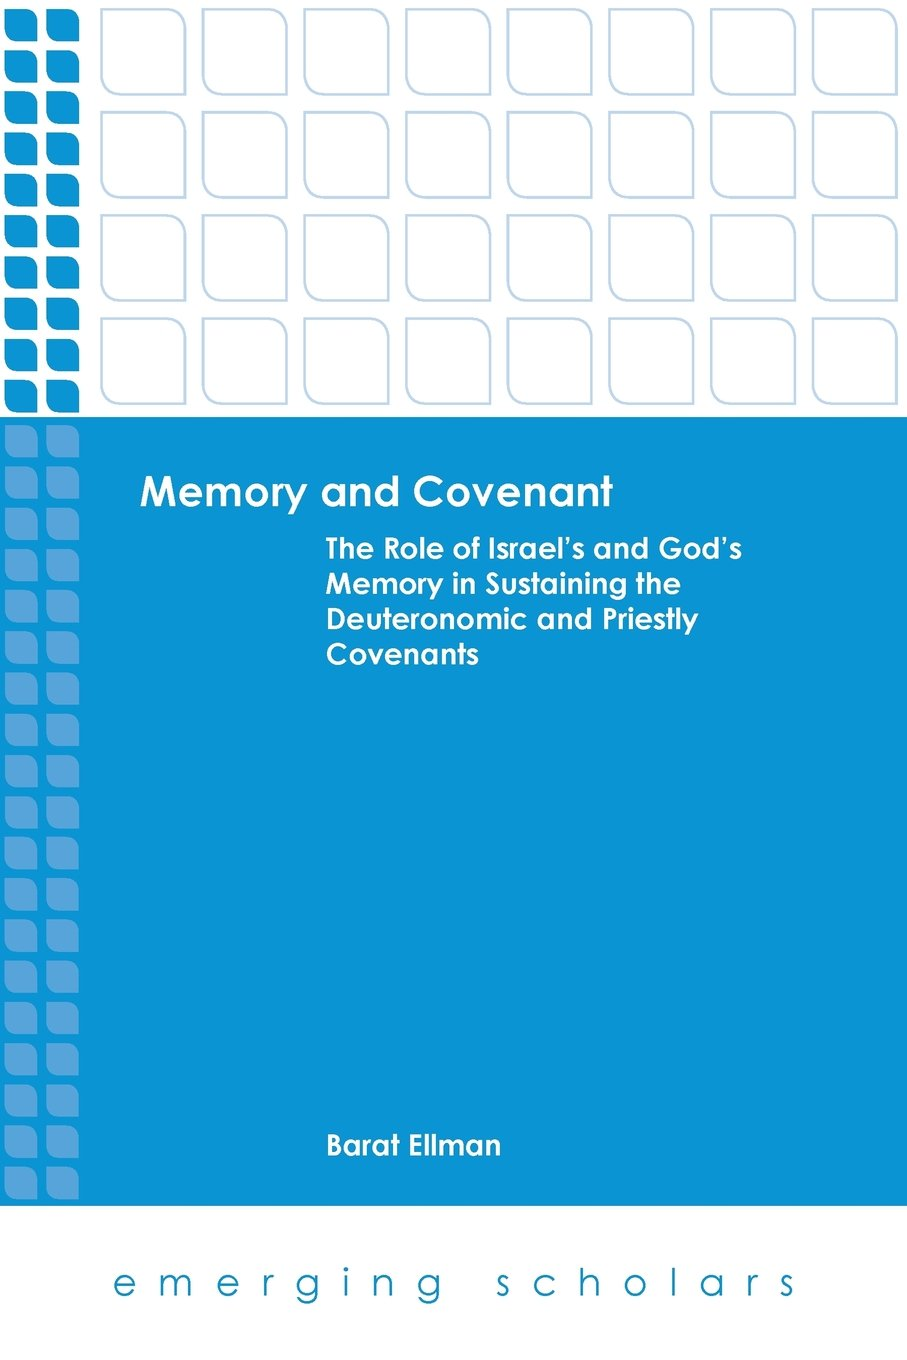 Memory and Covenant (Emerging Scholars)